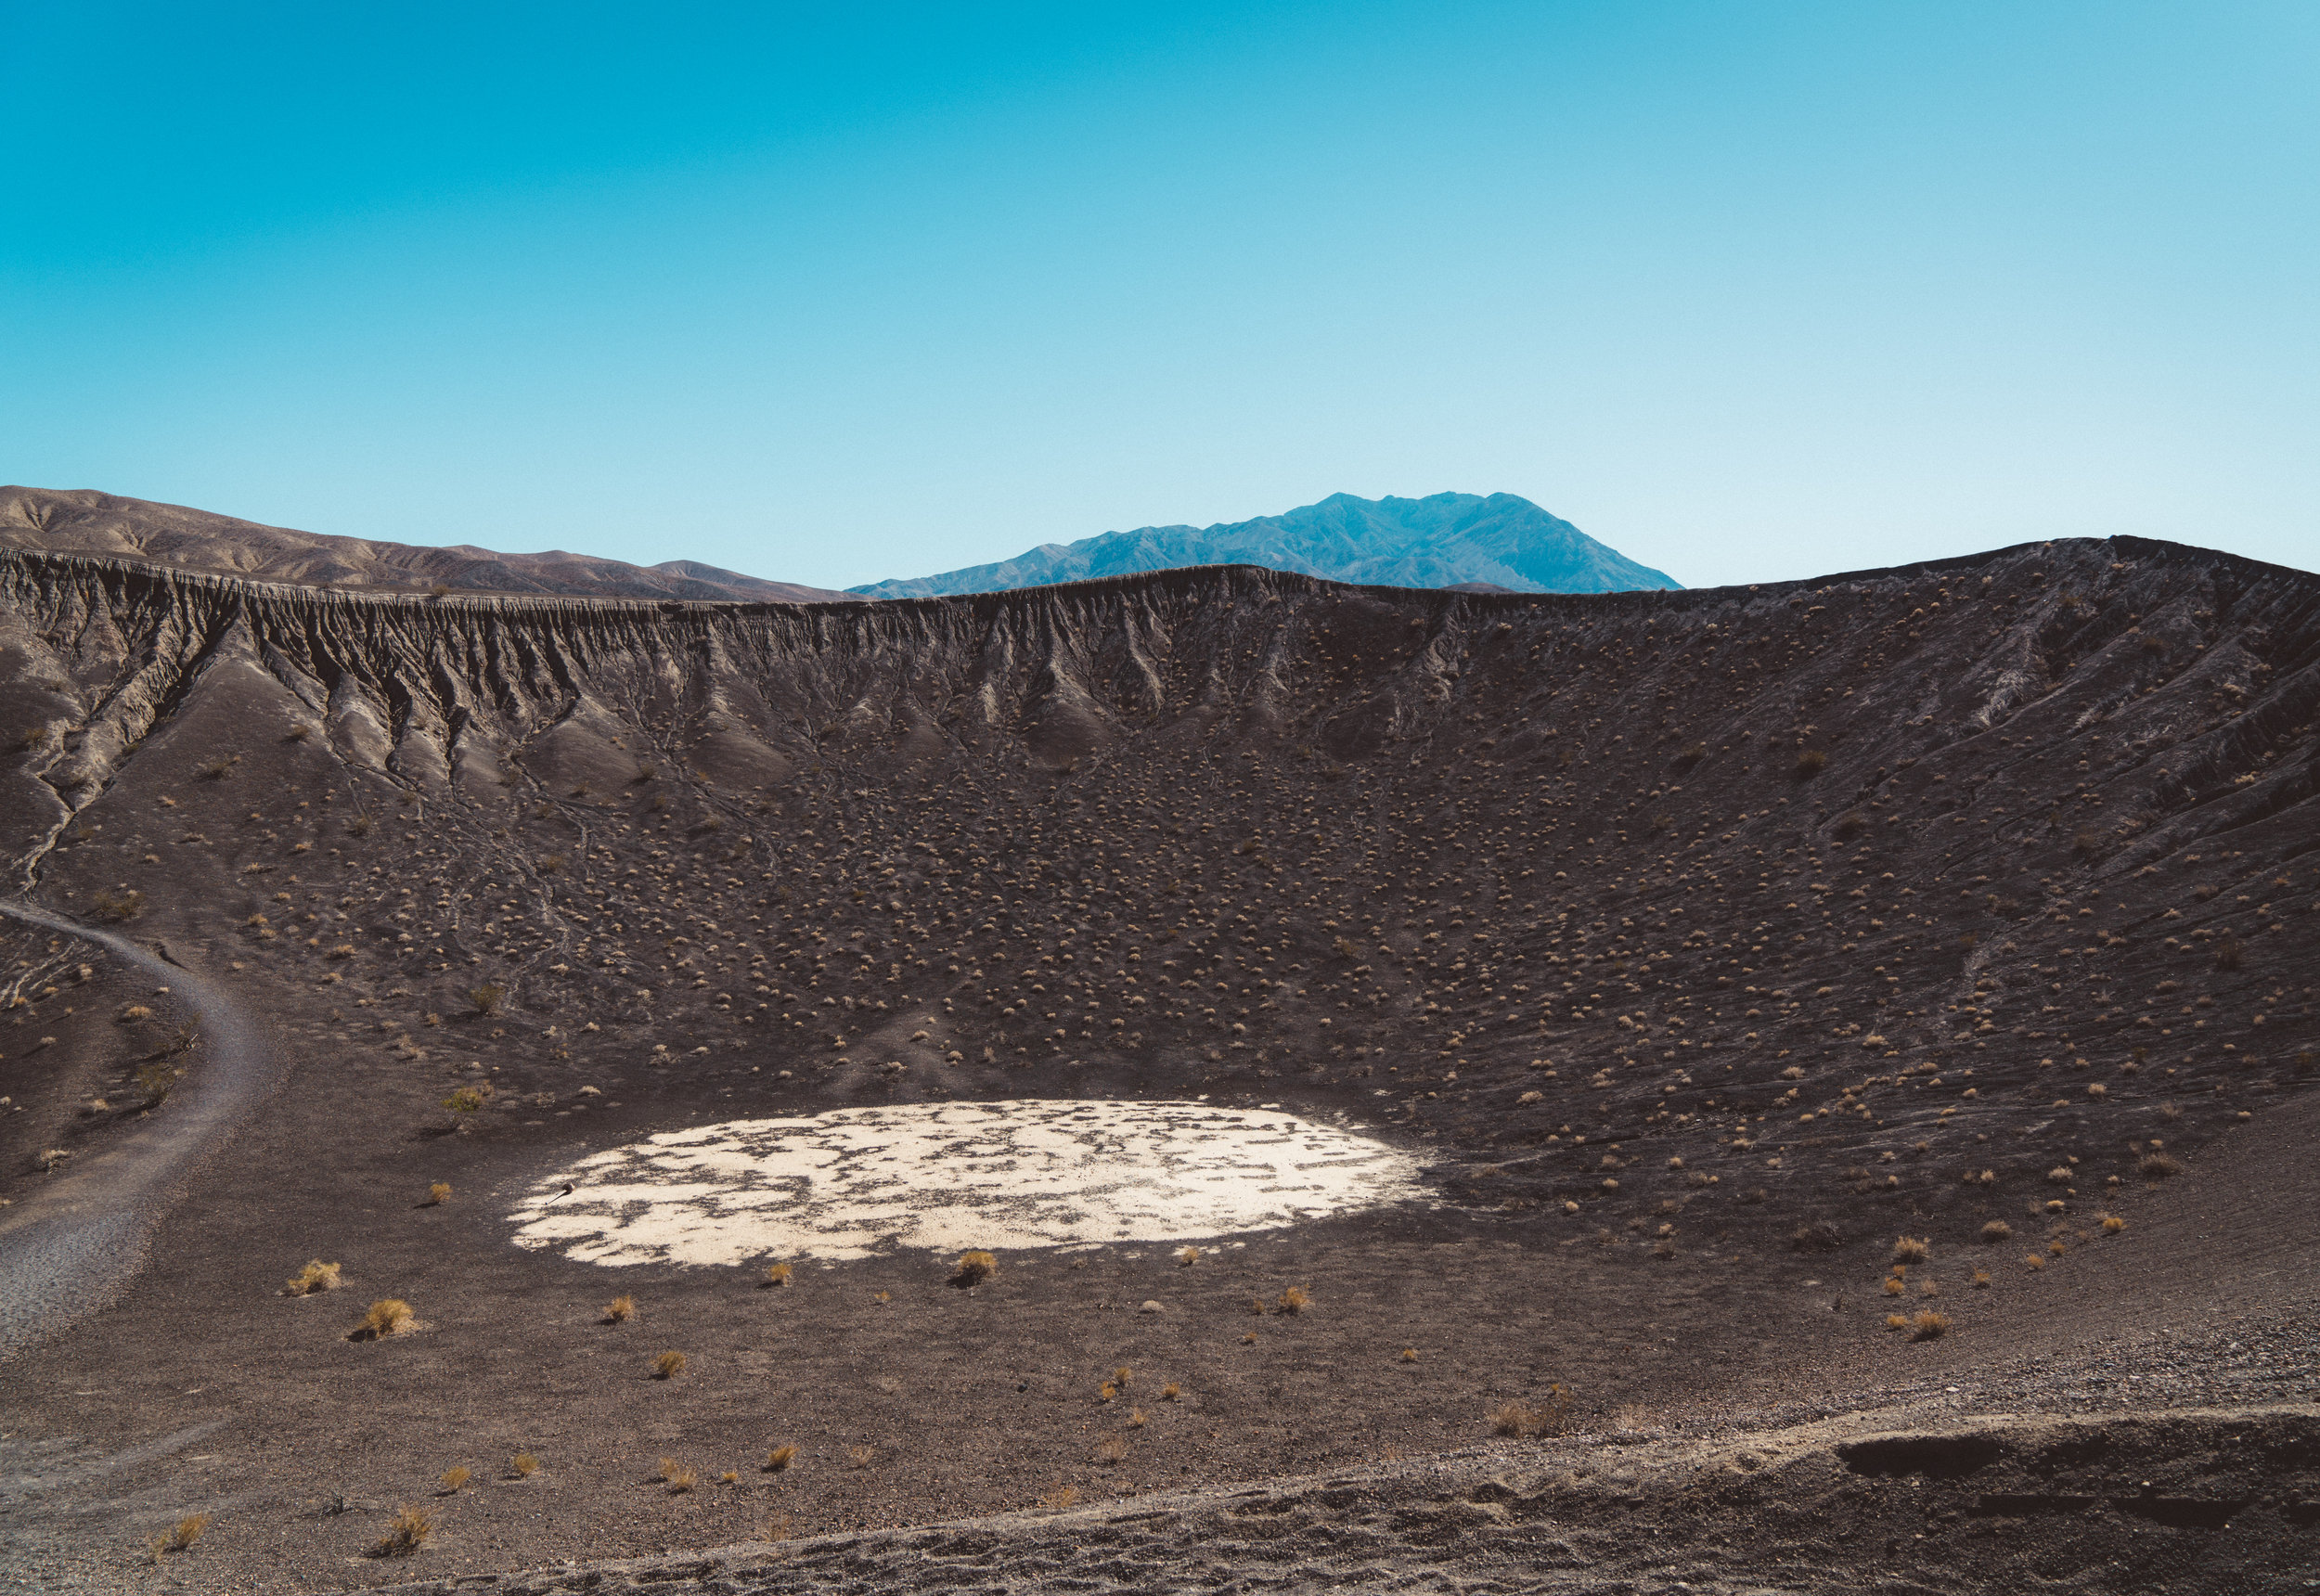 One of the other many volcanic craters surrounding Ubehebe.